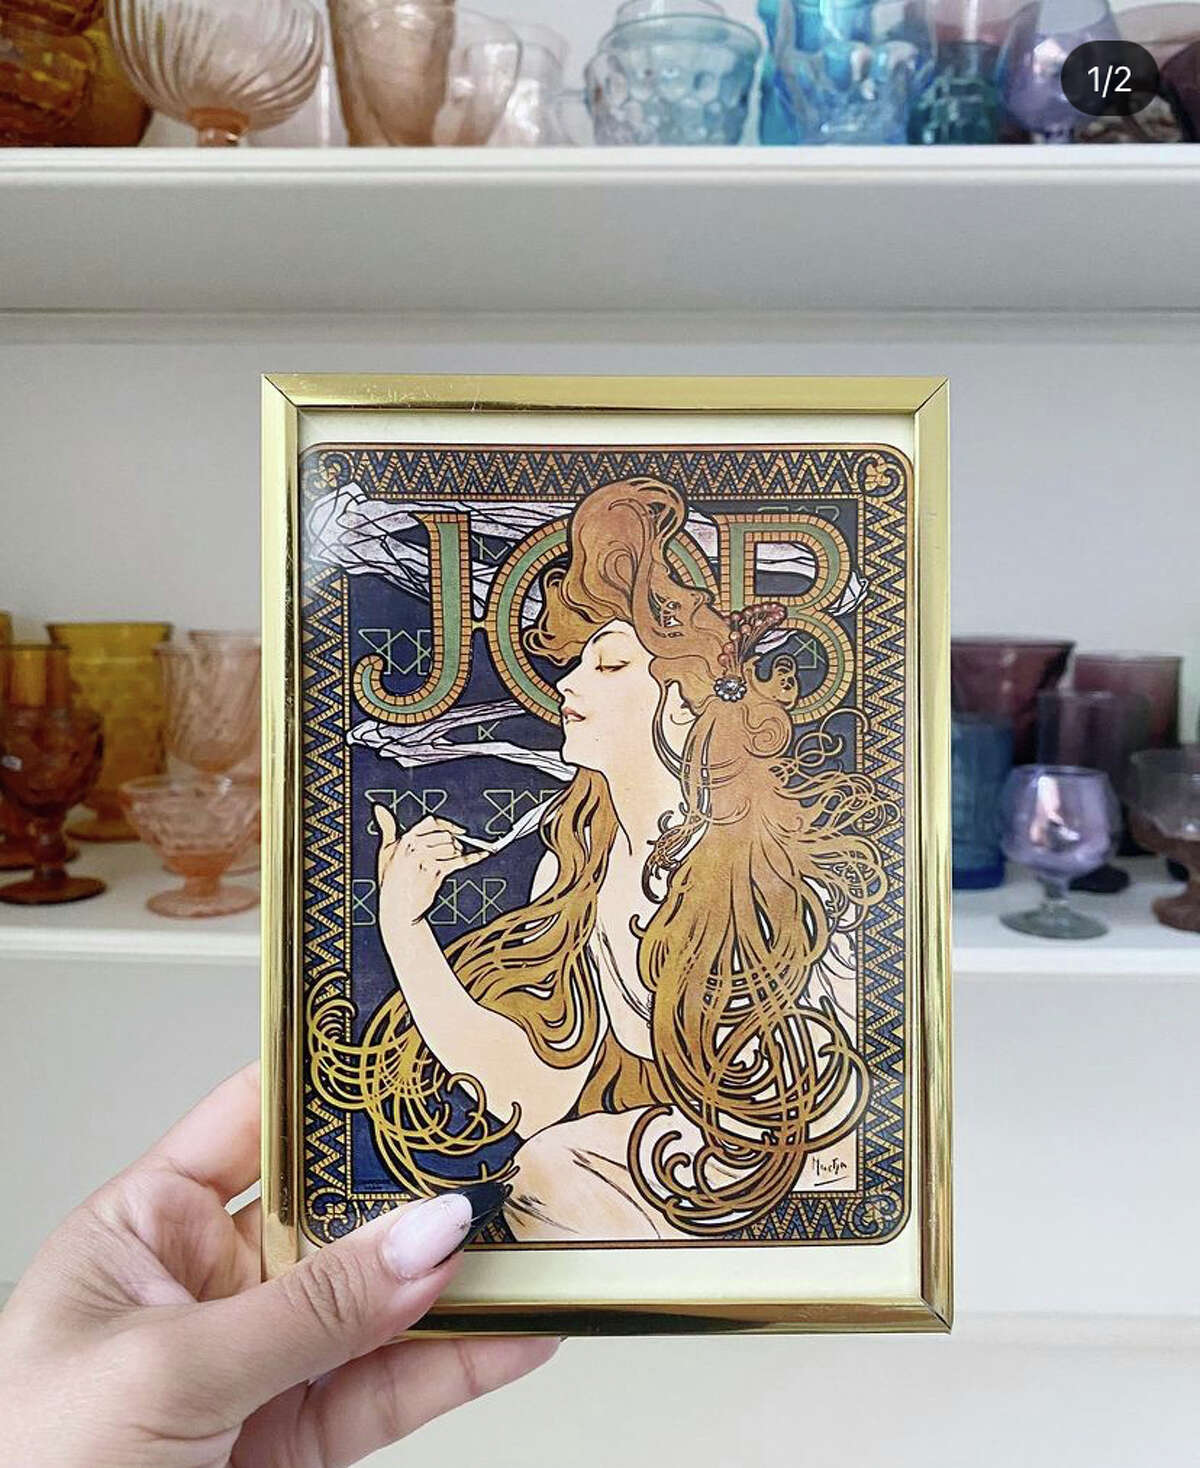 Rose Vintage Rose Vintage, run by Delisa and Joshua Morales, has been operating through Instagram @rosevintage.satx for one year. The shop always dazzles with colorful glassware, home furnishings, and art (like this framed art deco print by Alphonse Mucha).